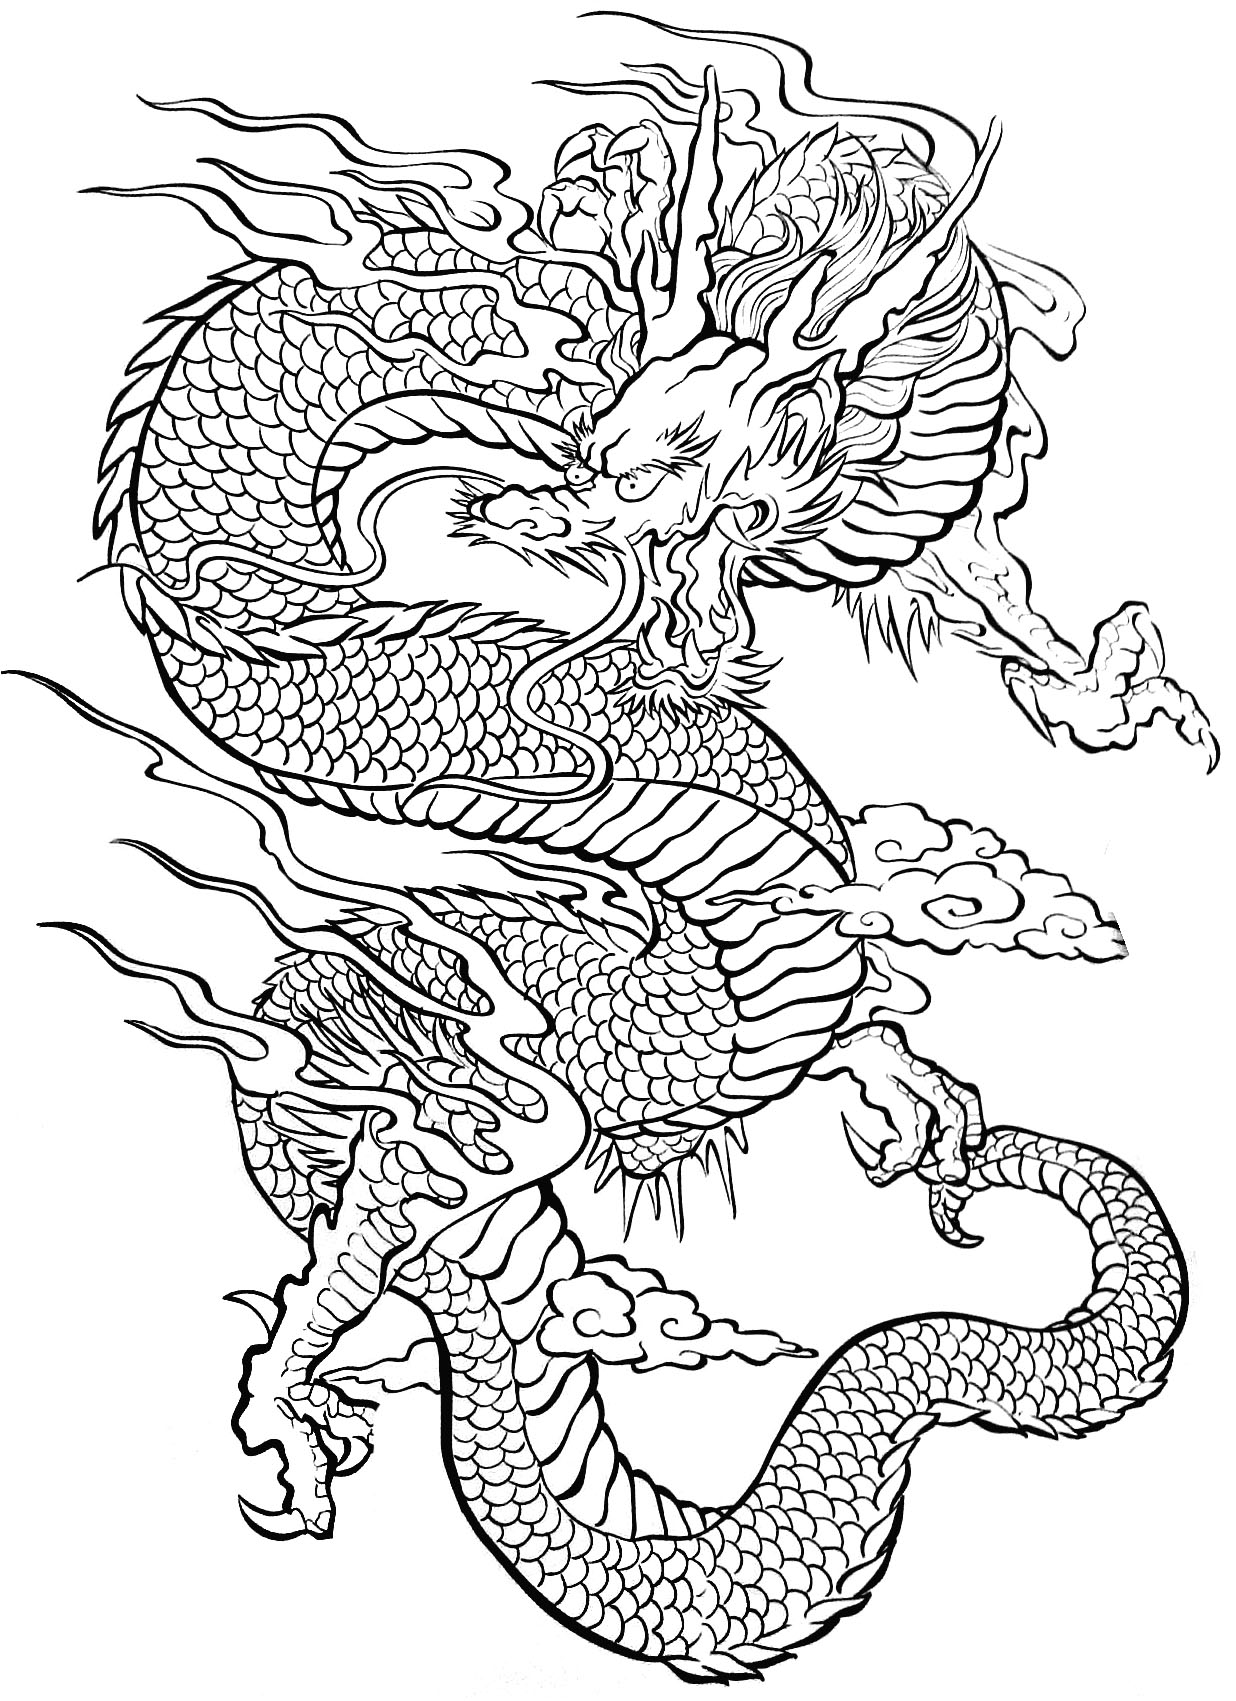 tatouage dragon tatouages coloriages difficiles pour adultes. Black Bedroom Furniture Sets. Home Design Ideas